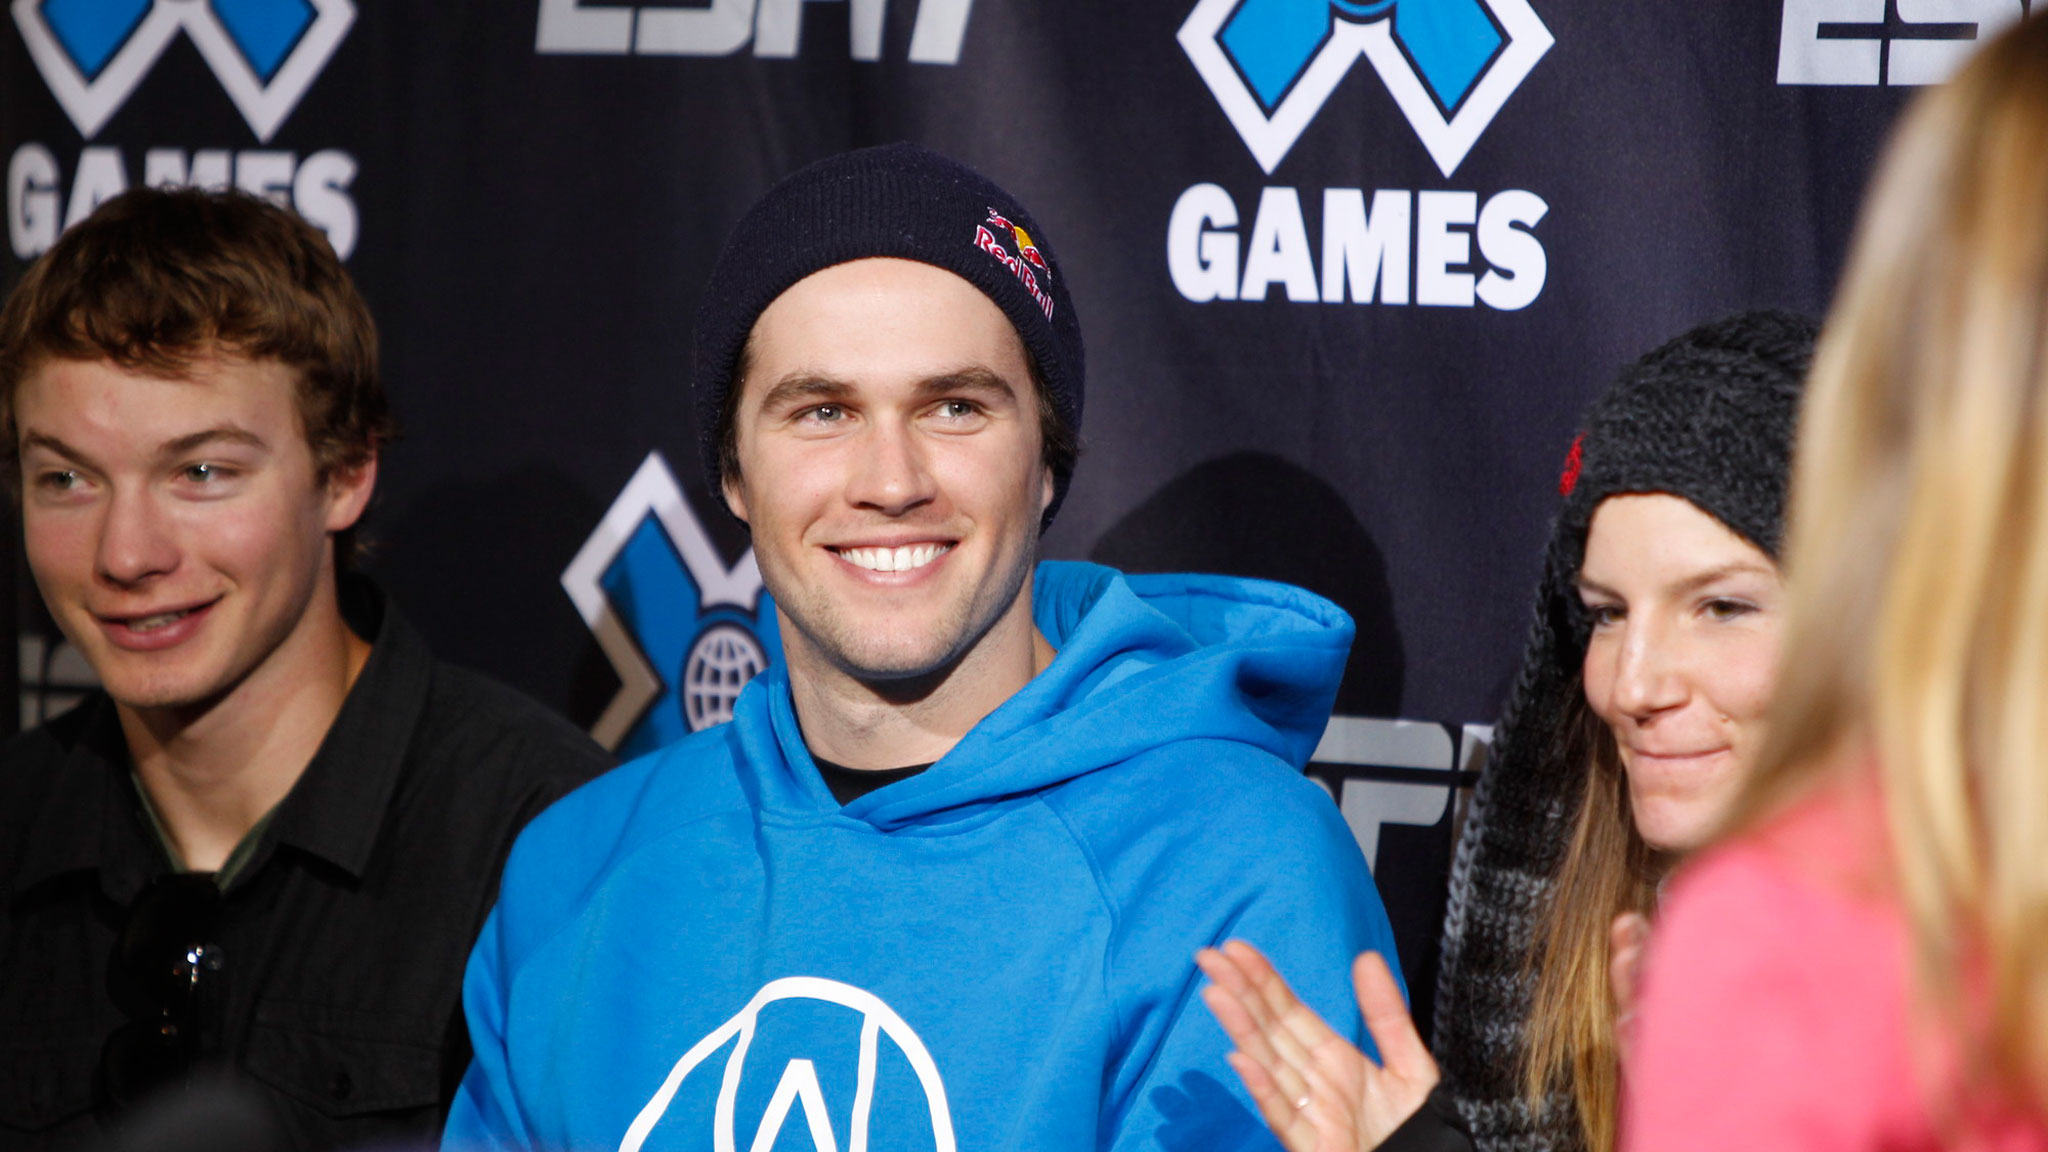 David Wise, Bobby Brown, and Kaya Turski during the opening press conference at X Games Aspen.